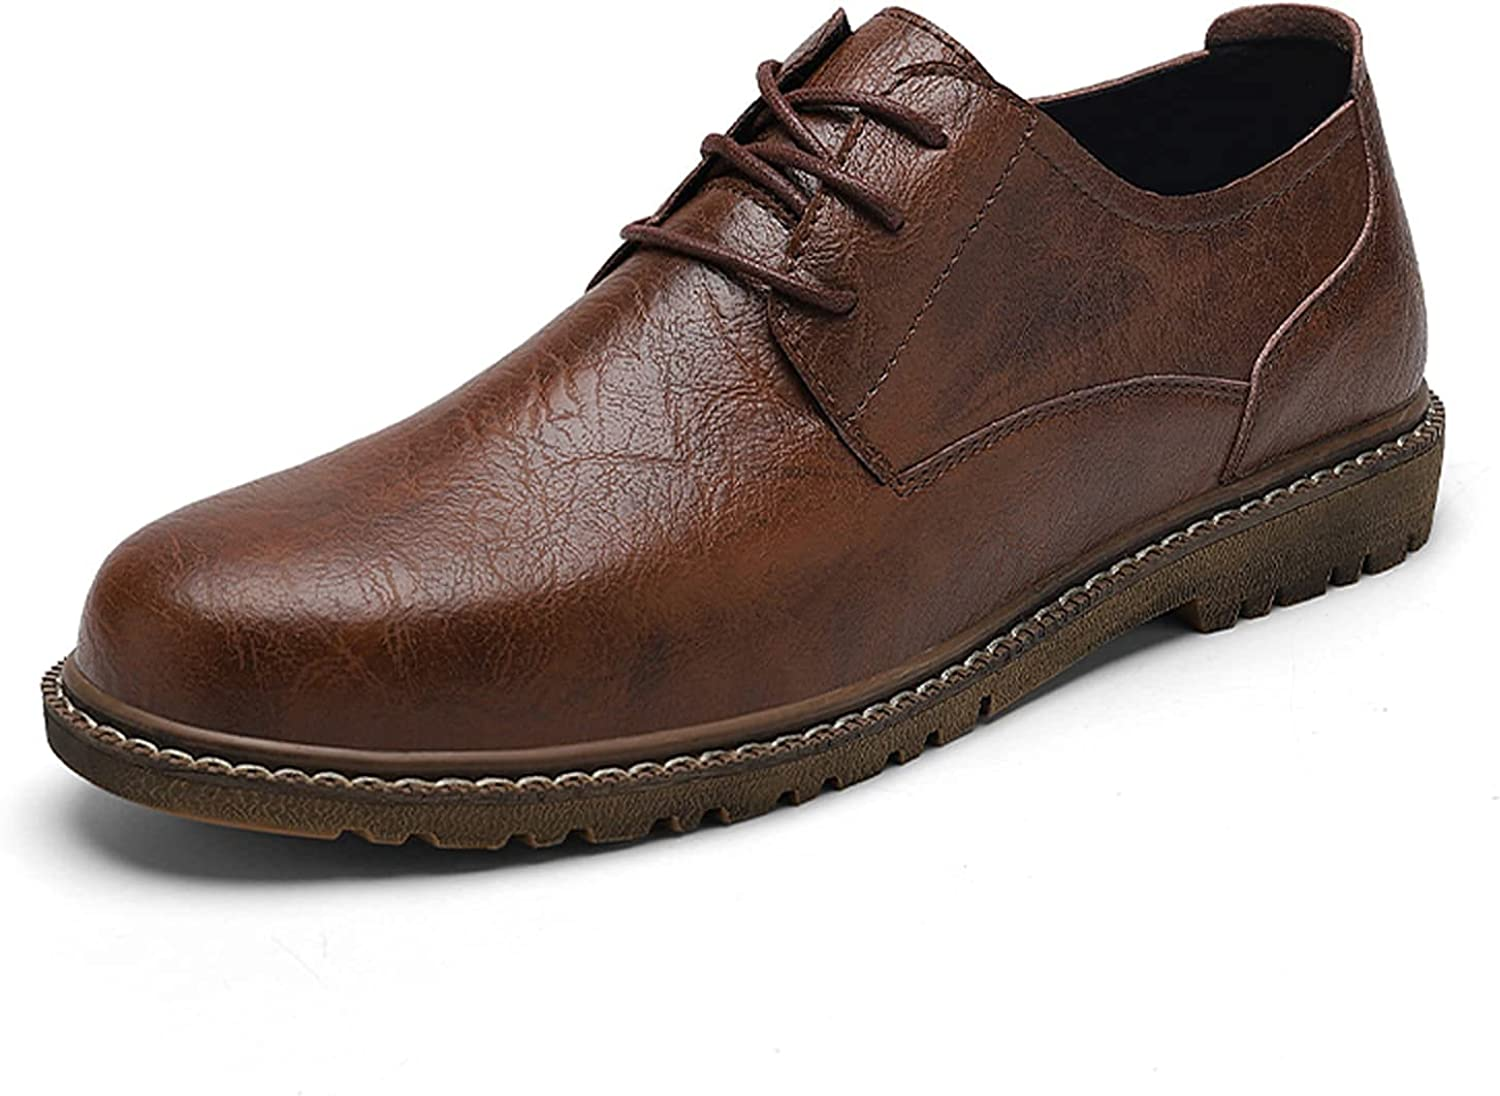 Men's Oxford Shoes Formal Casual Classic Leather Sneakers Business Fashion 2308